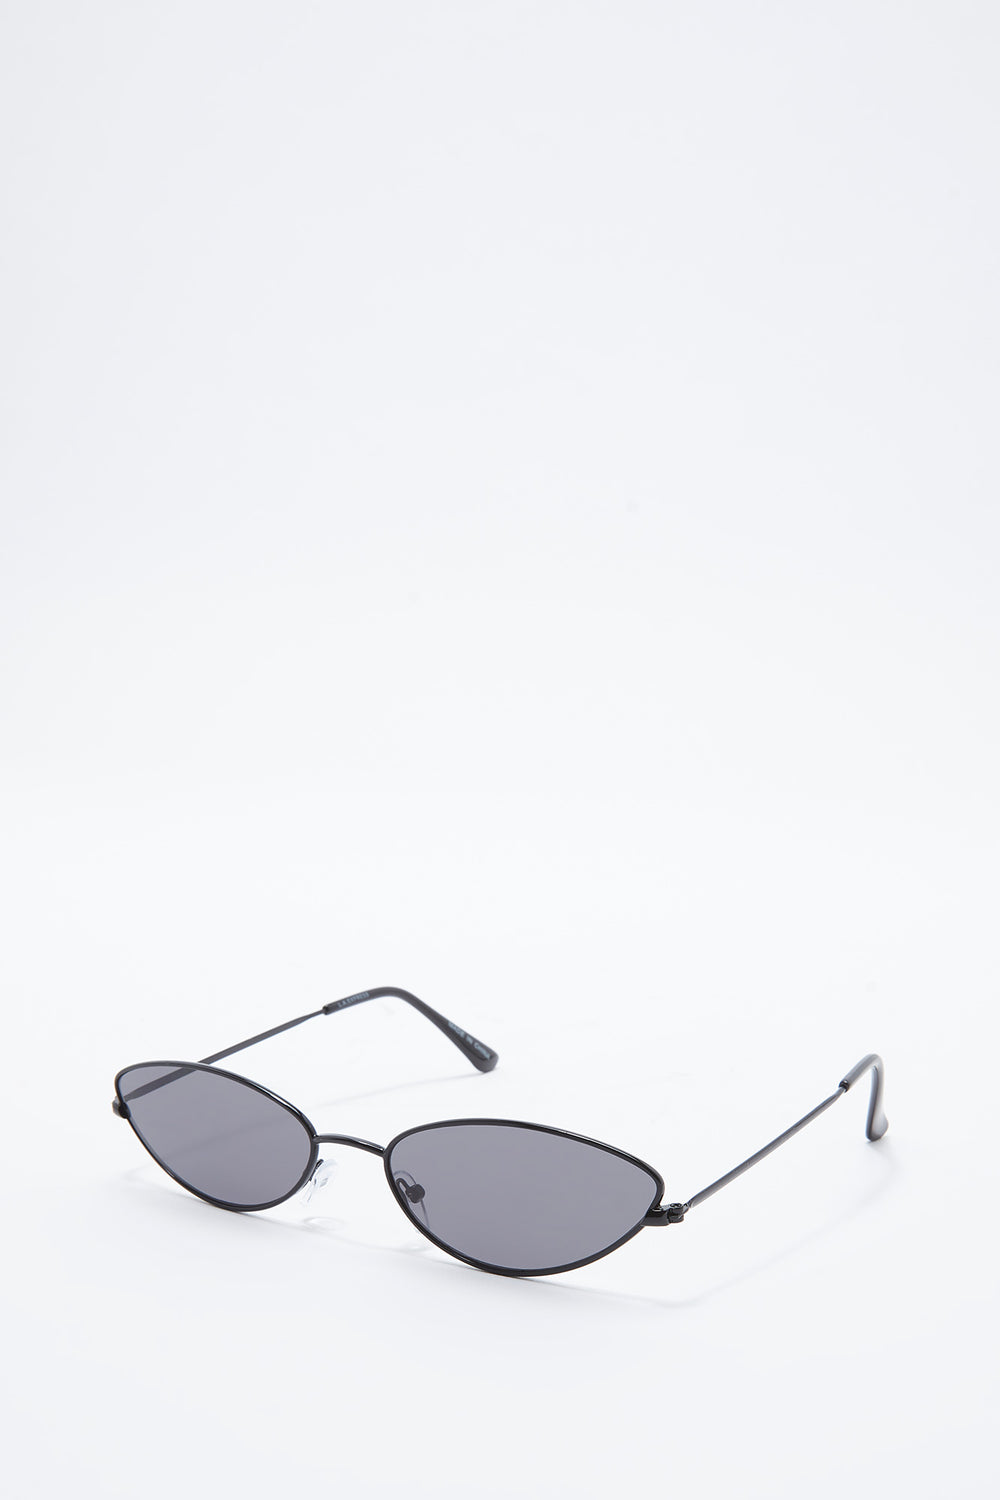 Micro Metal Cat Eye Sunglasses Plaid